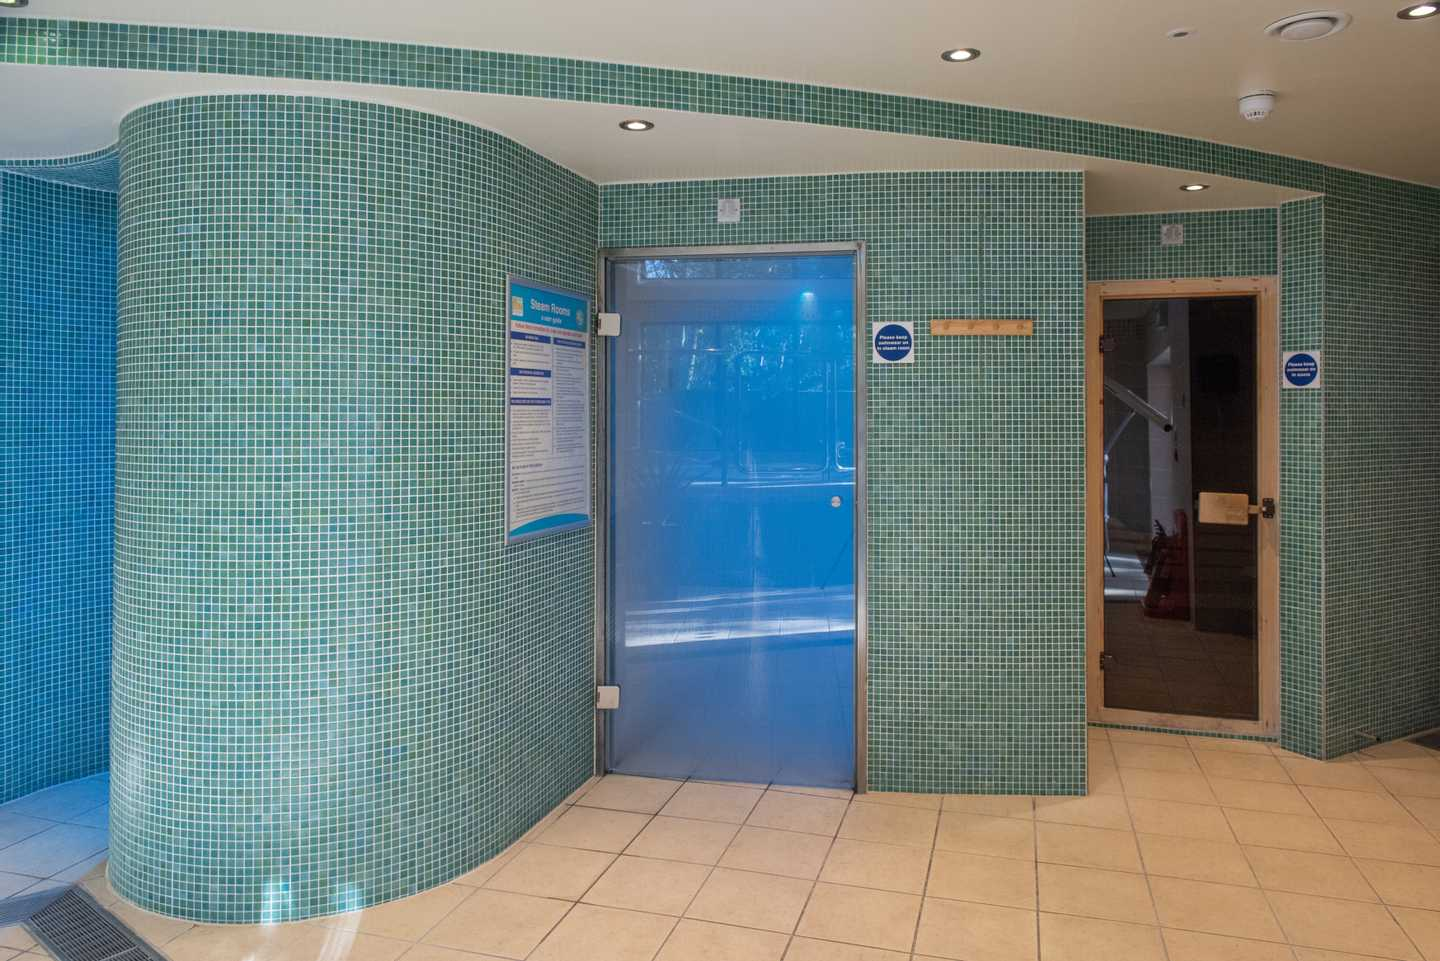 The owners' steam room at Church Farm